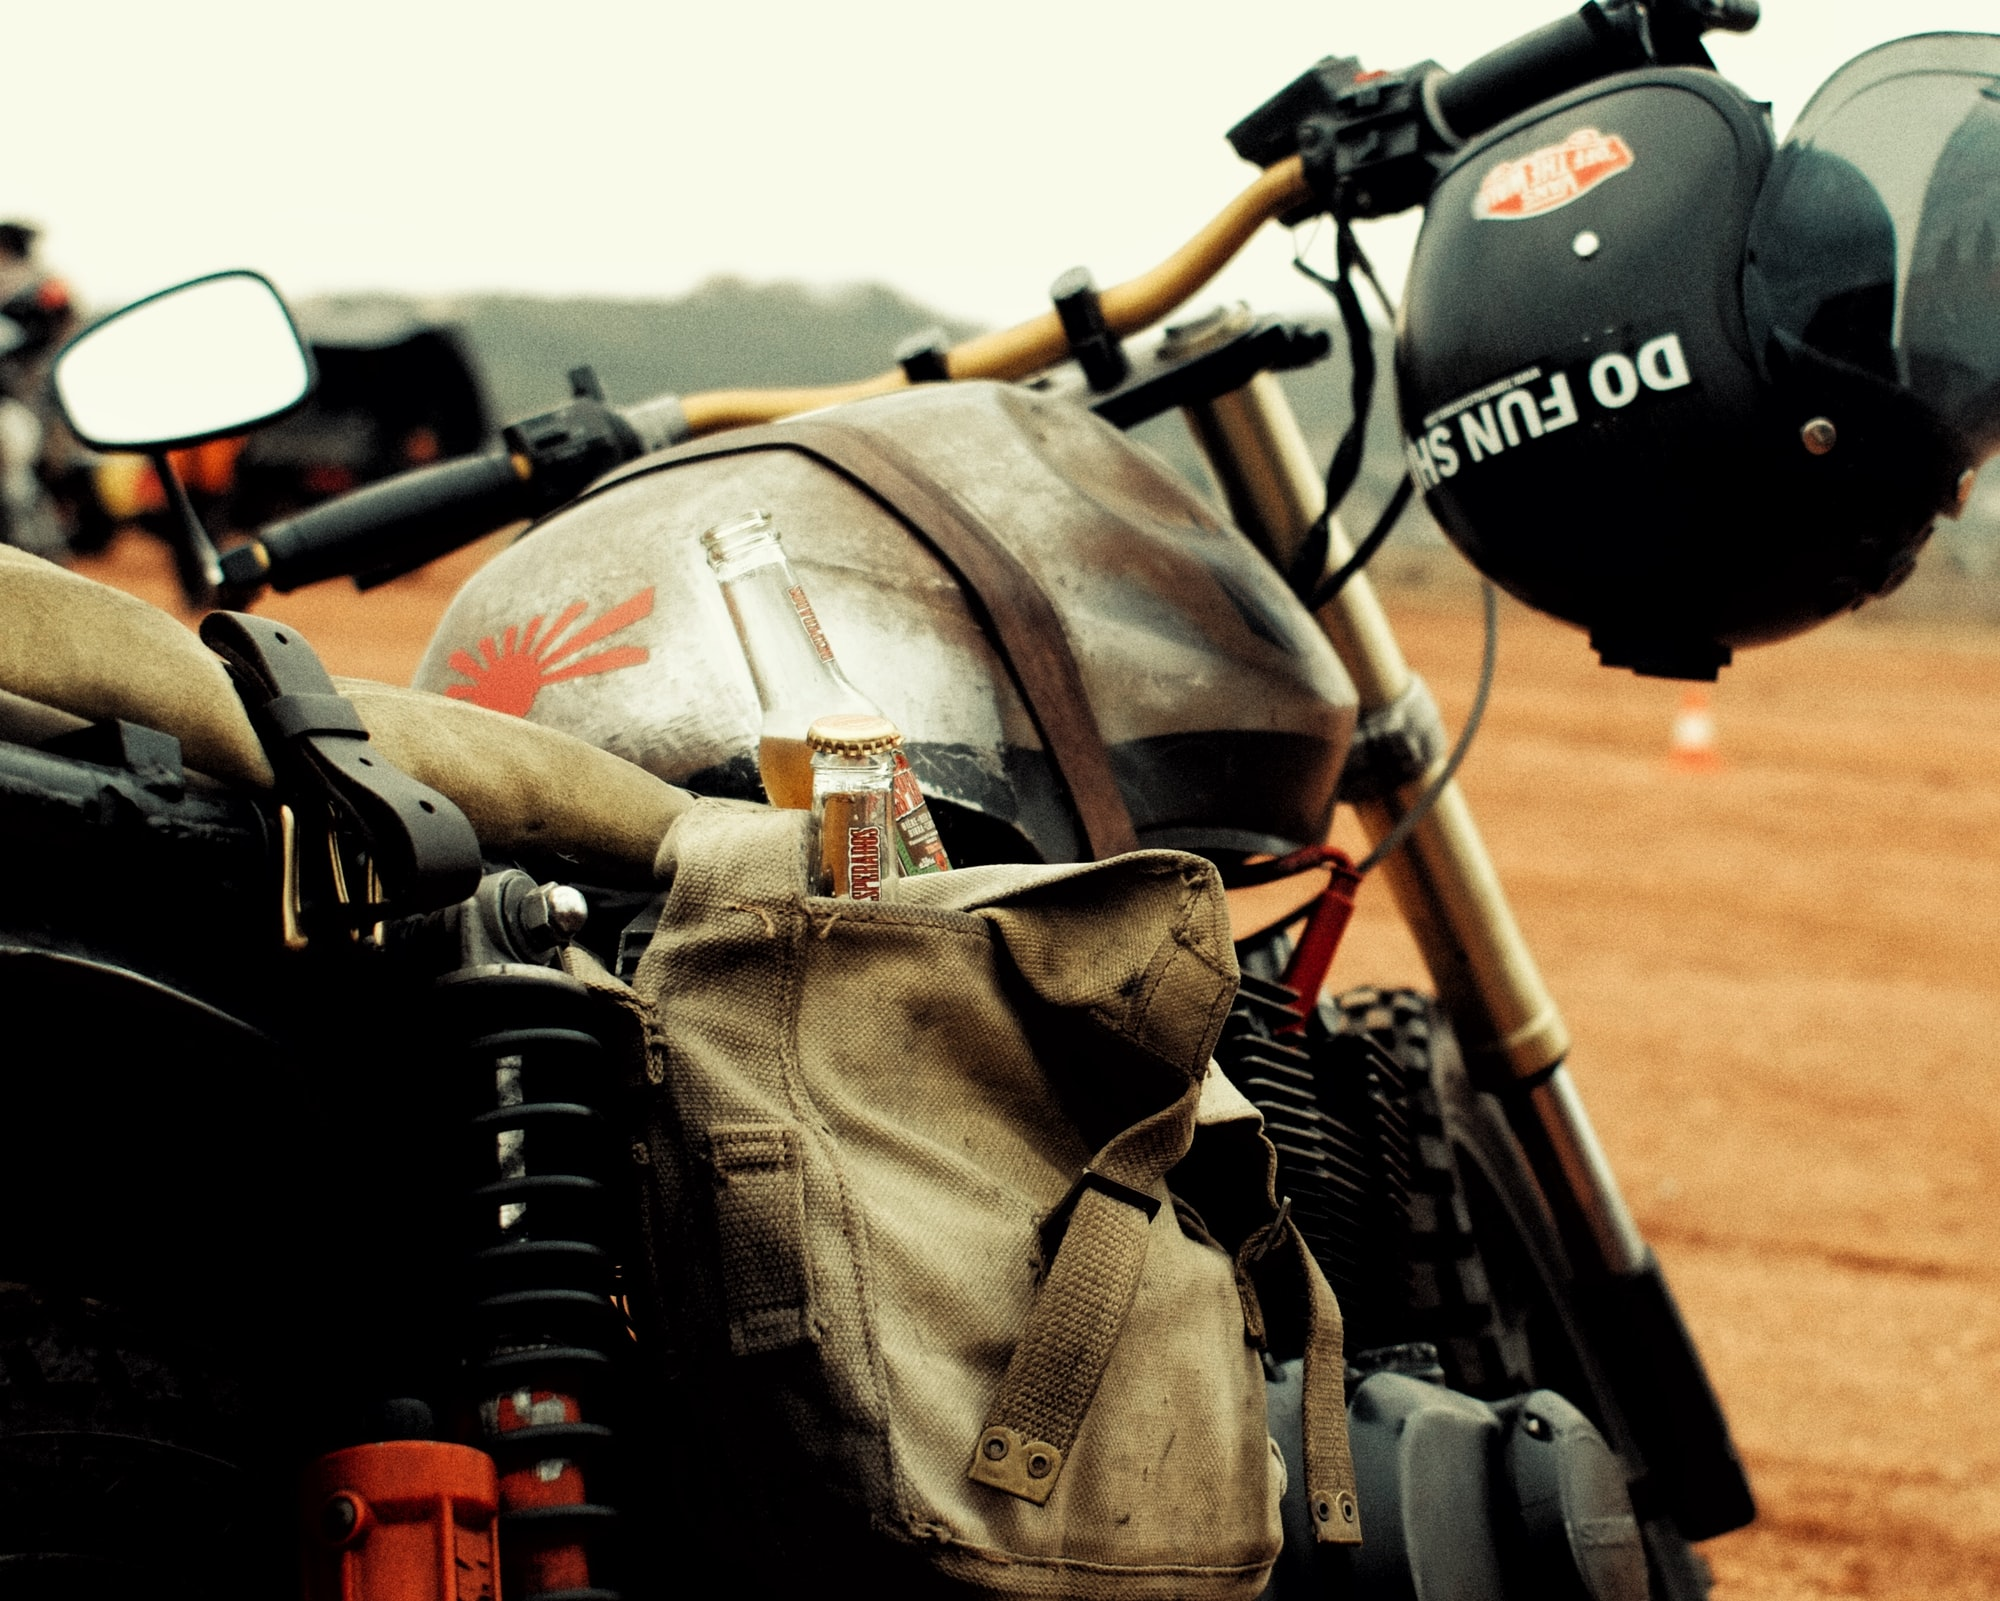 How I added a GPS unit to my motorcycle, using a spatula